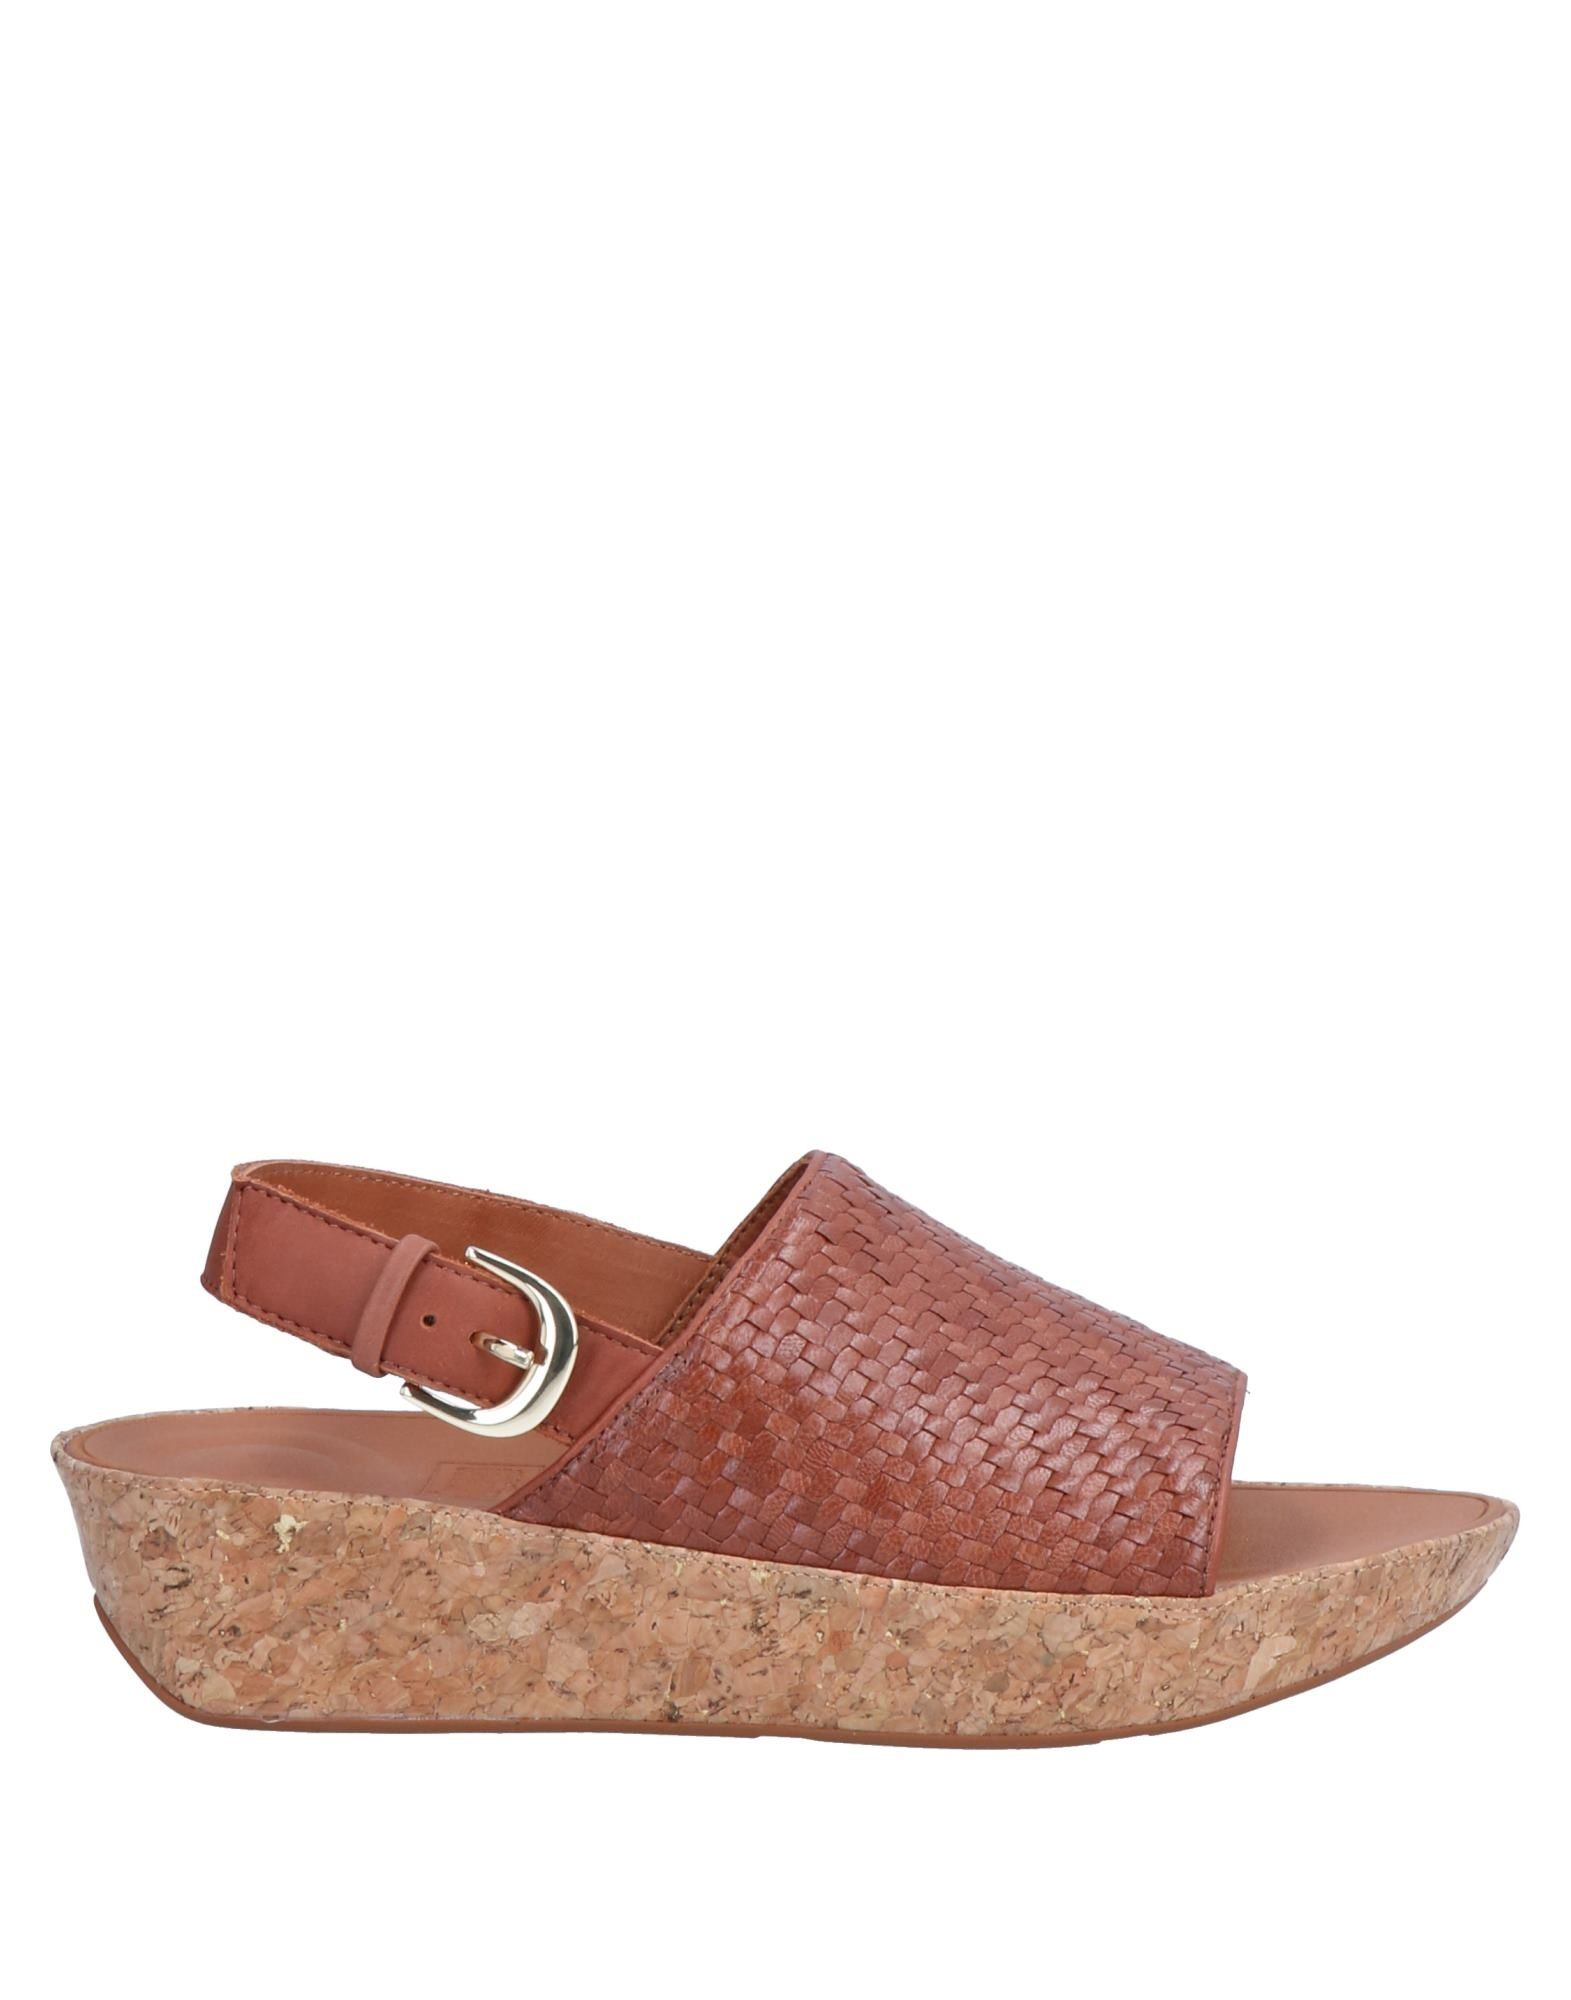 9da7b9e6f0c039 Fitflop Sandals In Brown